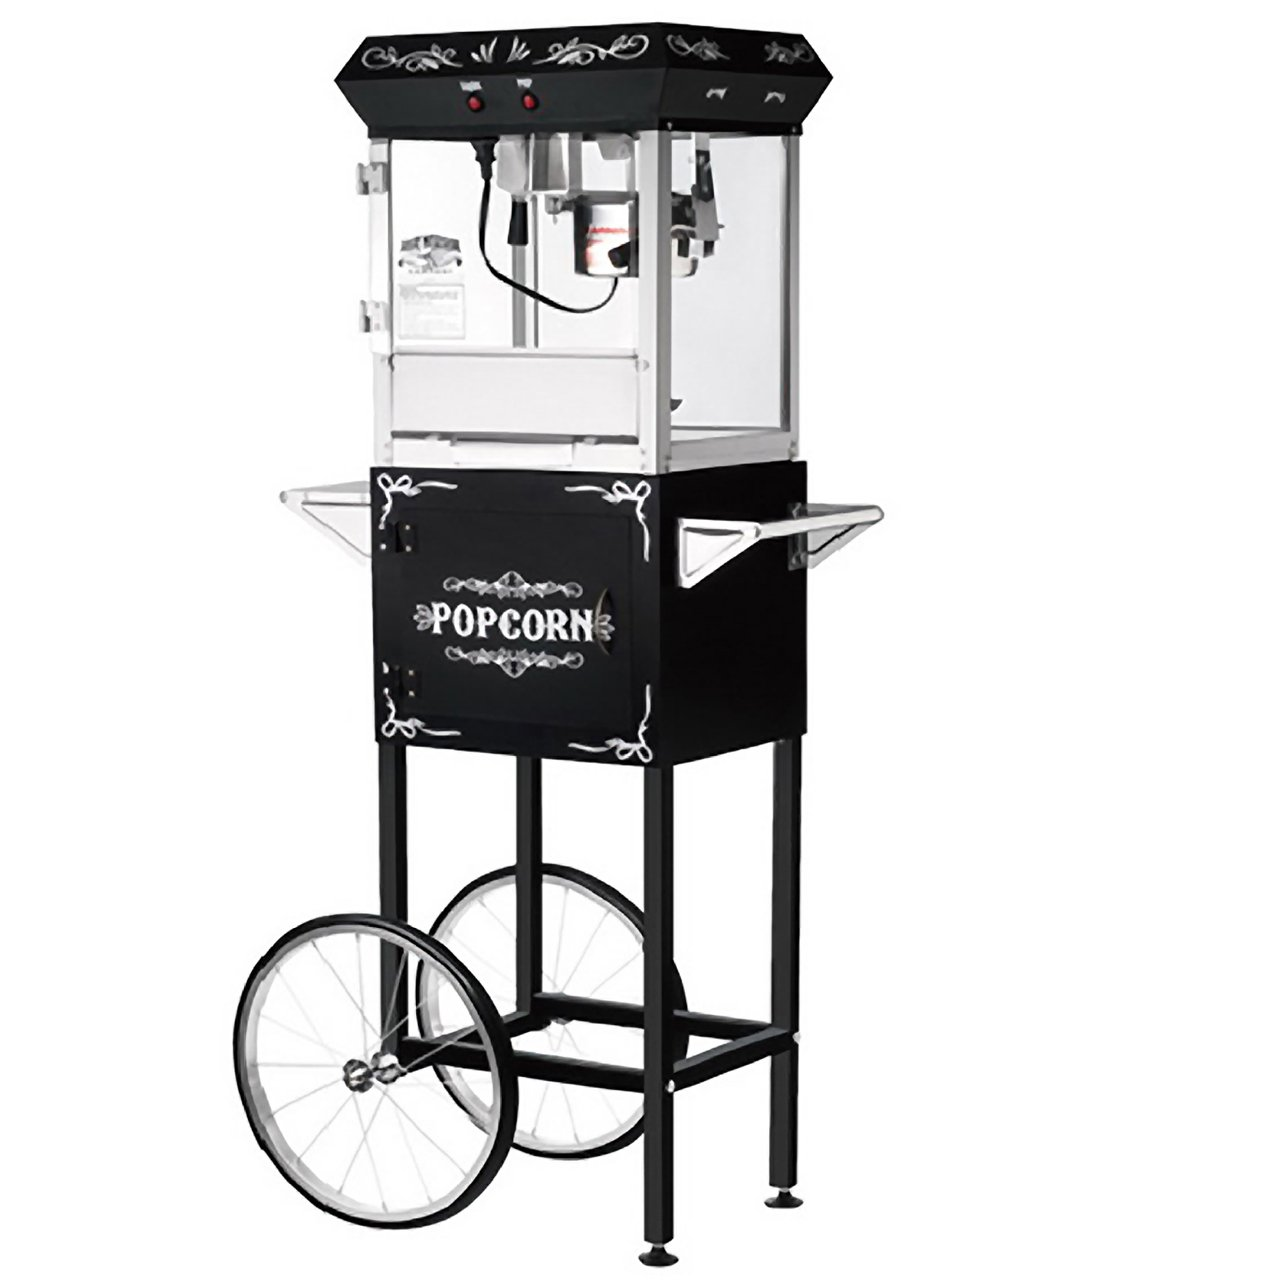 Great Northern Popcorn Black 6 oz. Ounce Foundation Old-Fashioned Movie Theater Style Popcorn Popper With Cart by Great Northern Popcorn Company